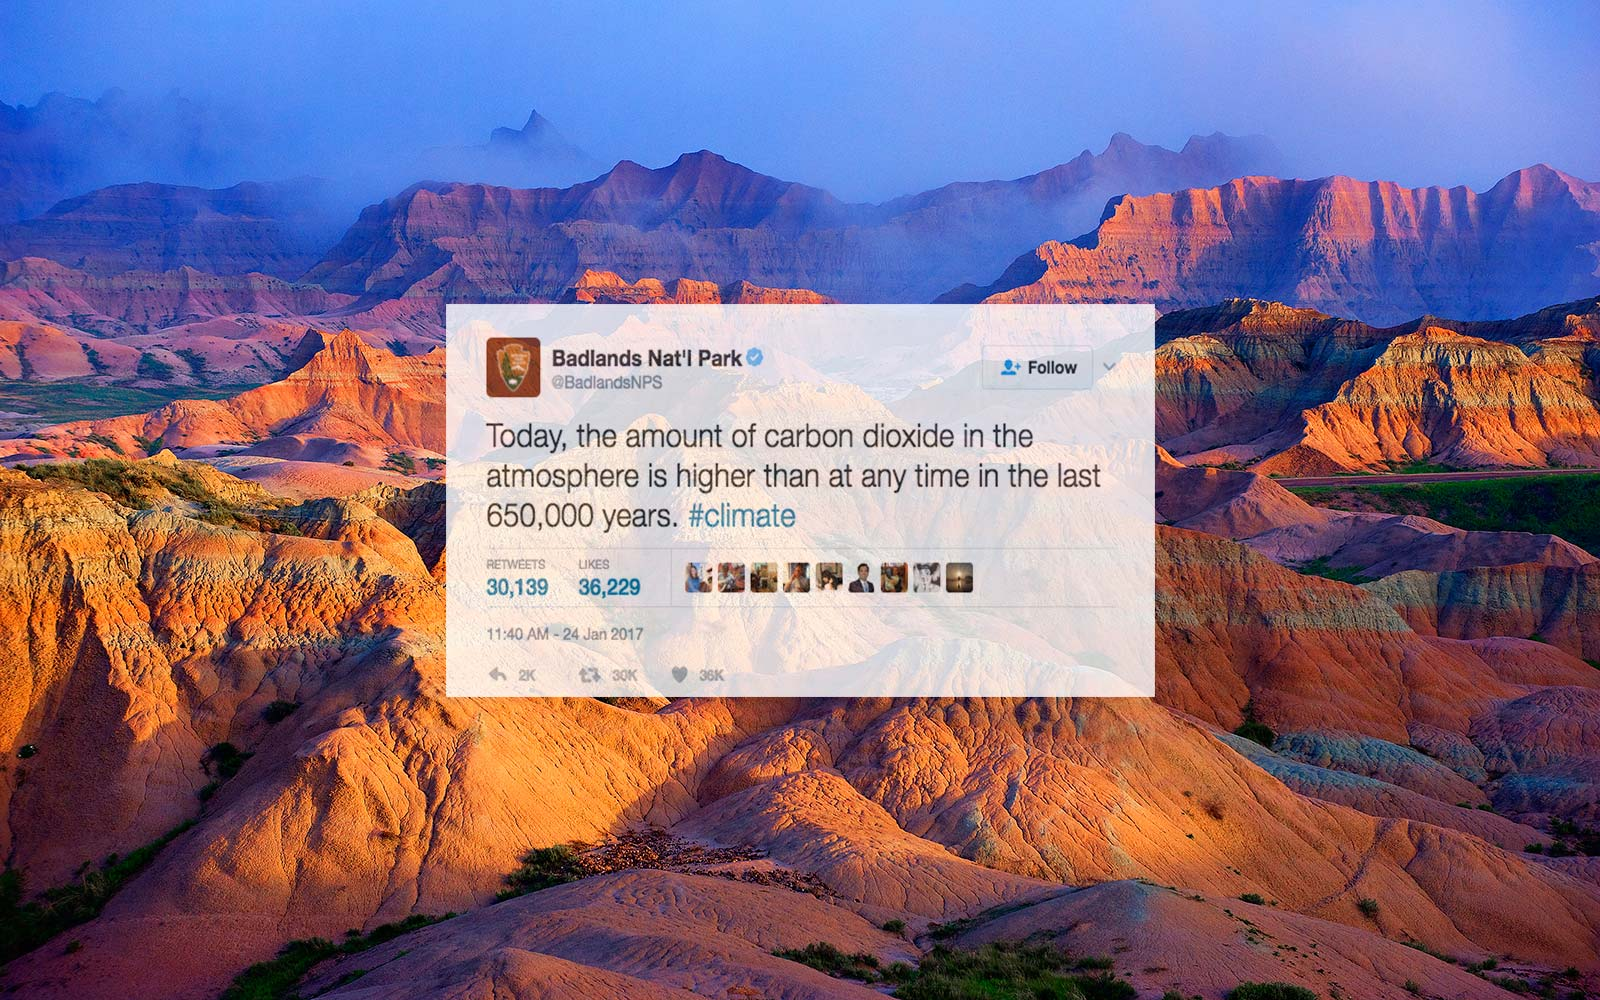 National parks tweeting about climate change